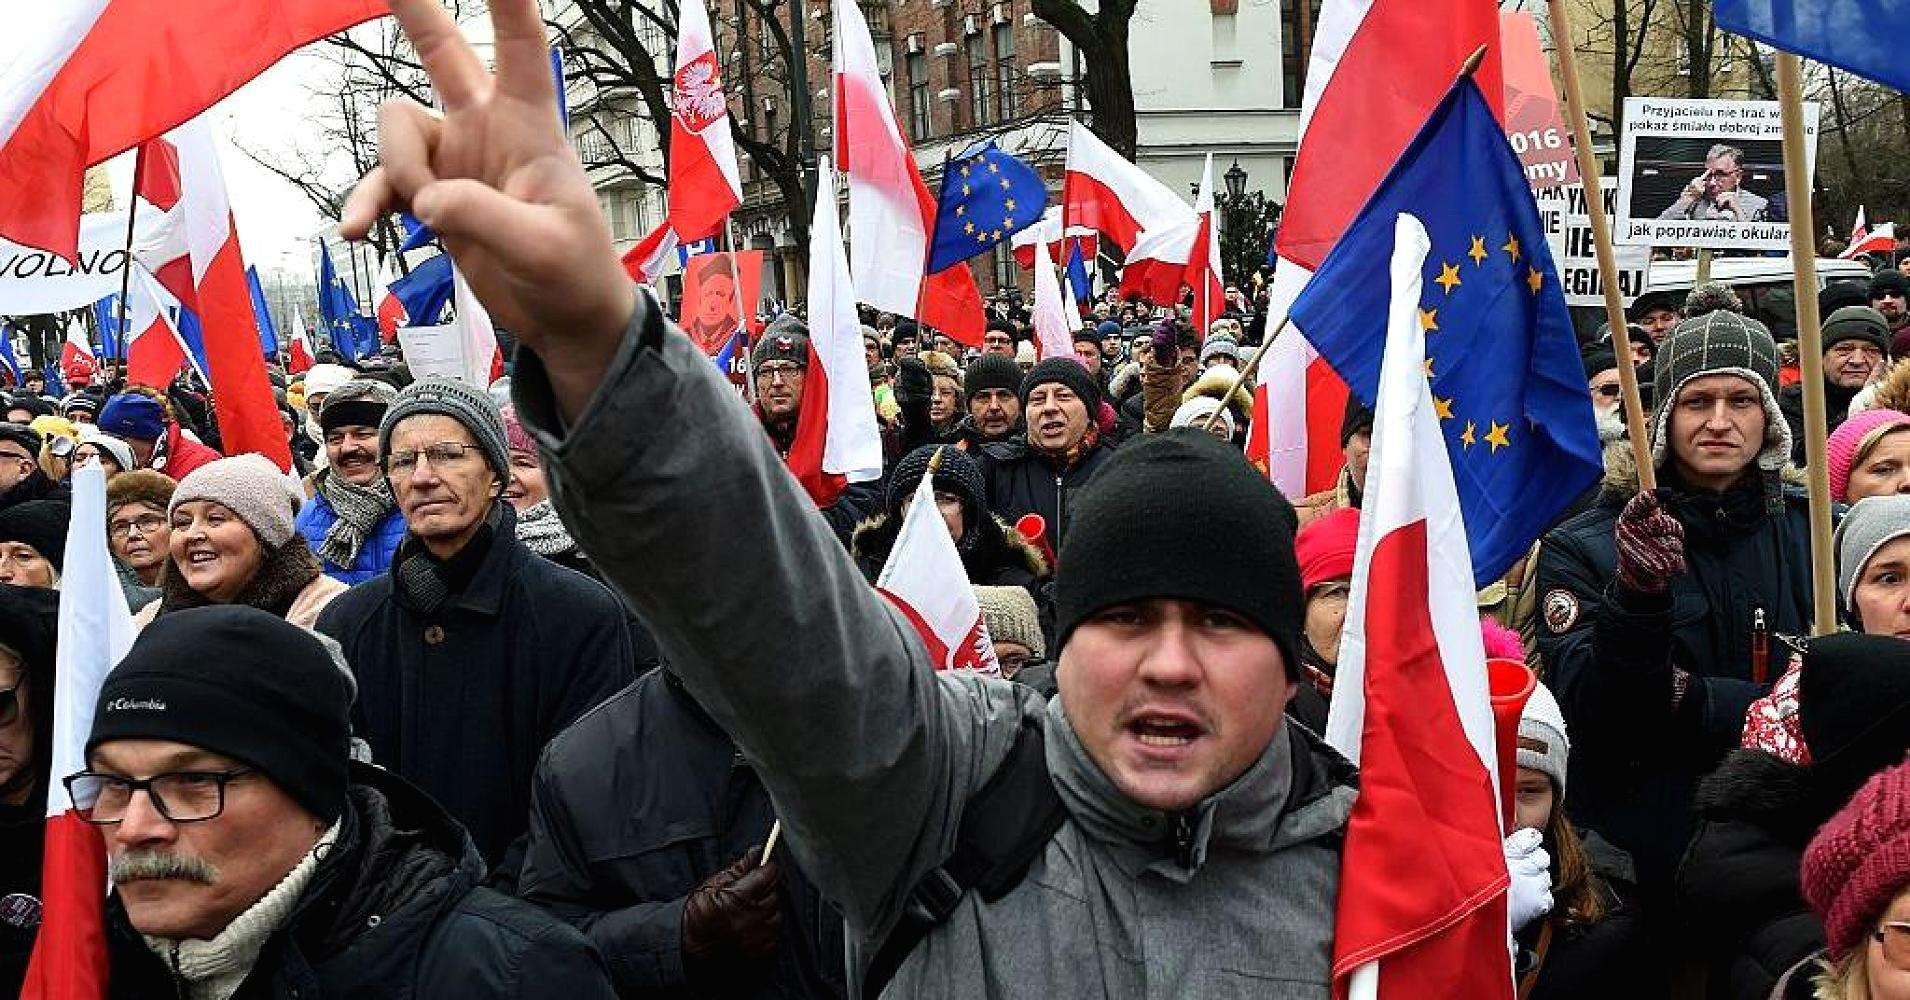 """#FactOfTheDay 07/11/2017: In Poland, for the rule of law there is still a """"serious threat"""""""